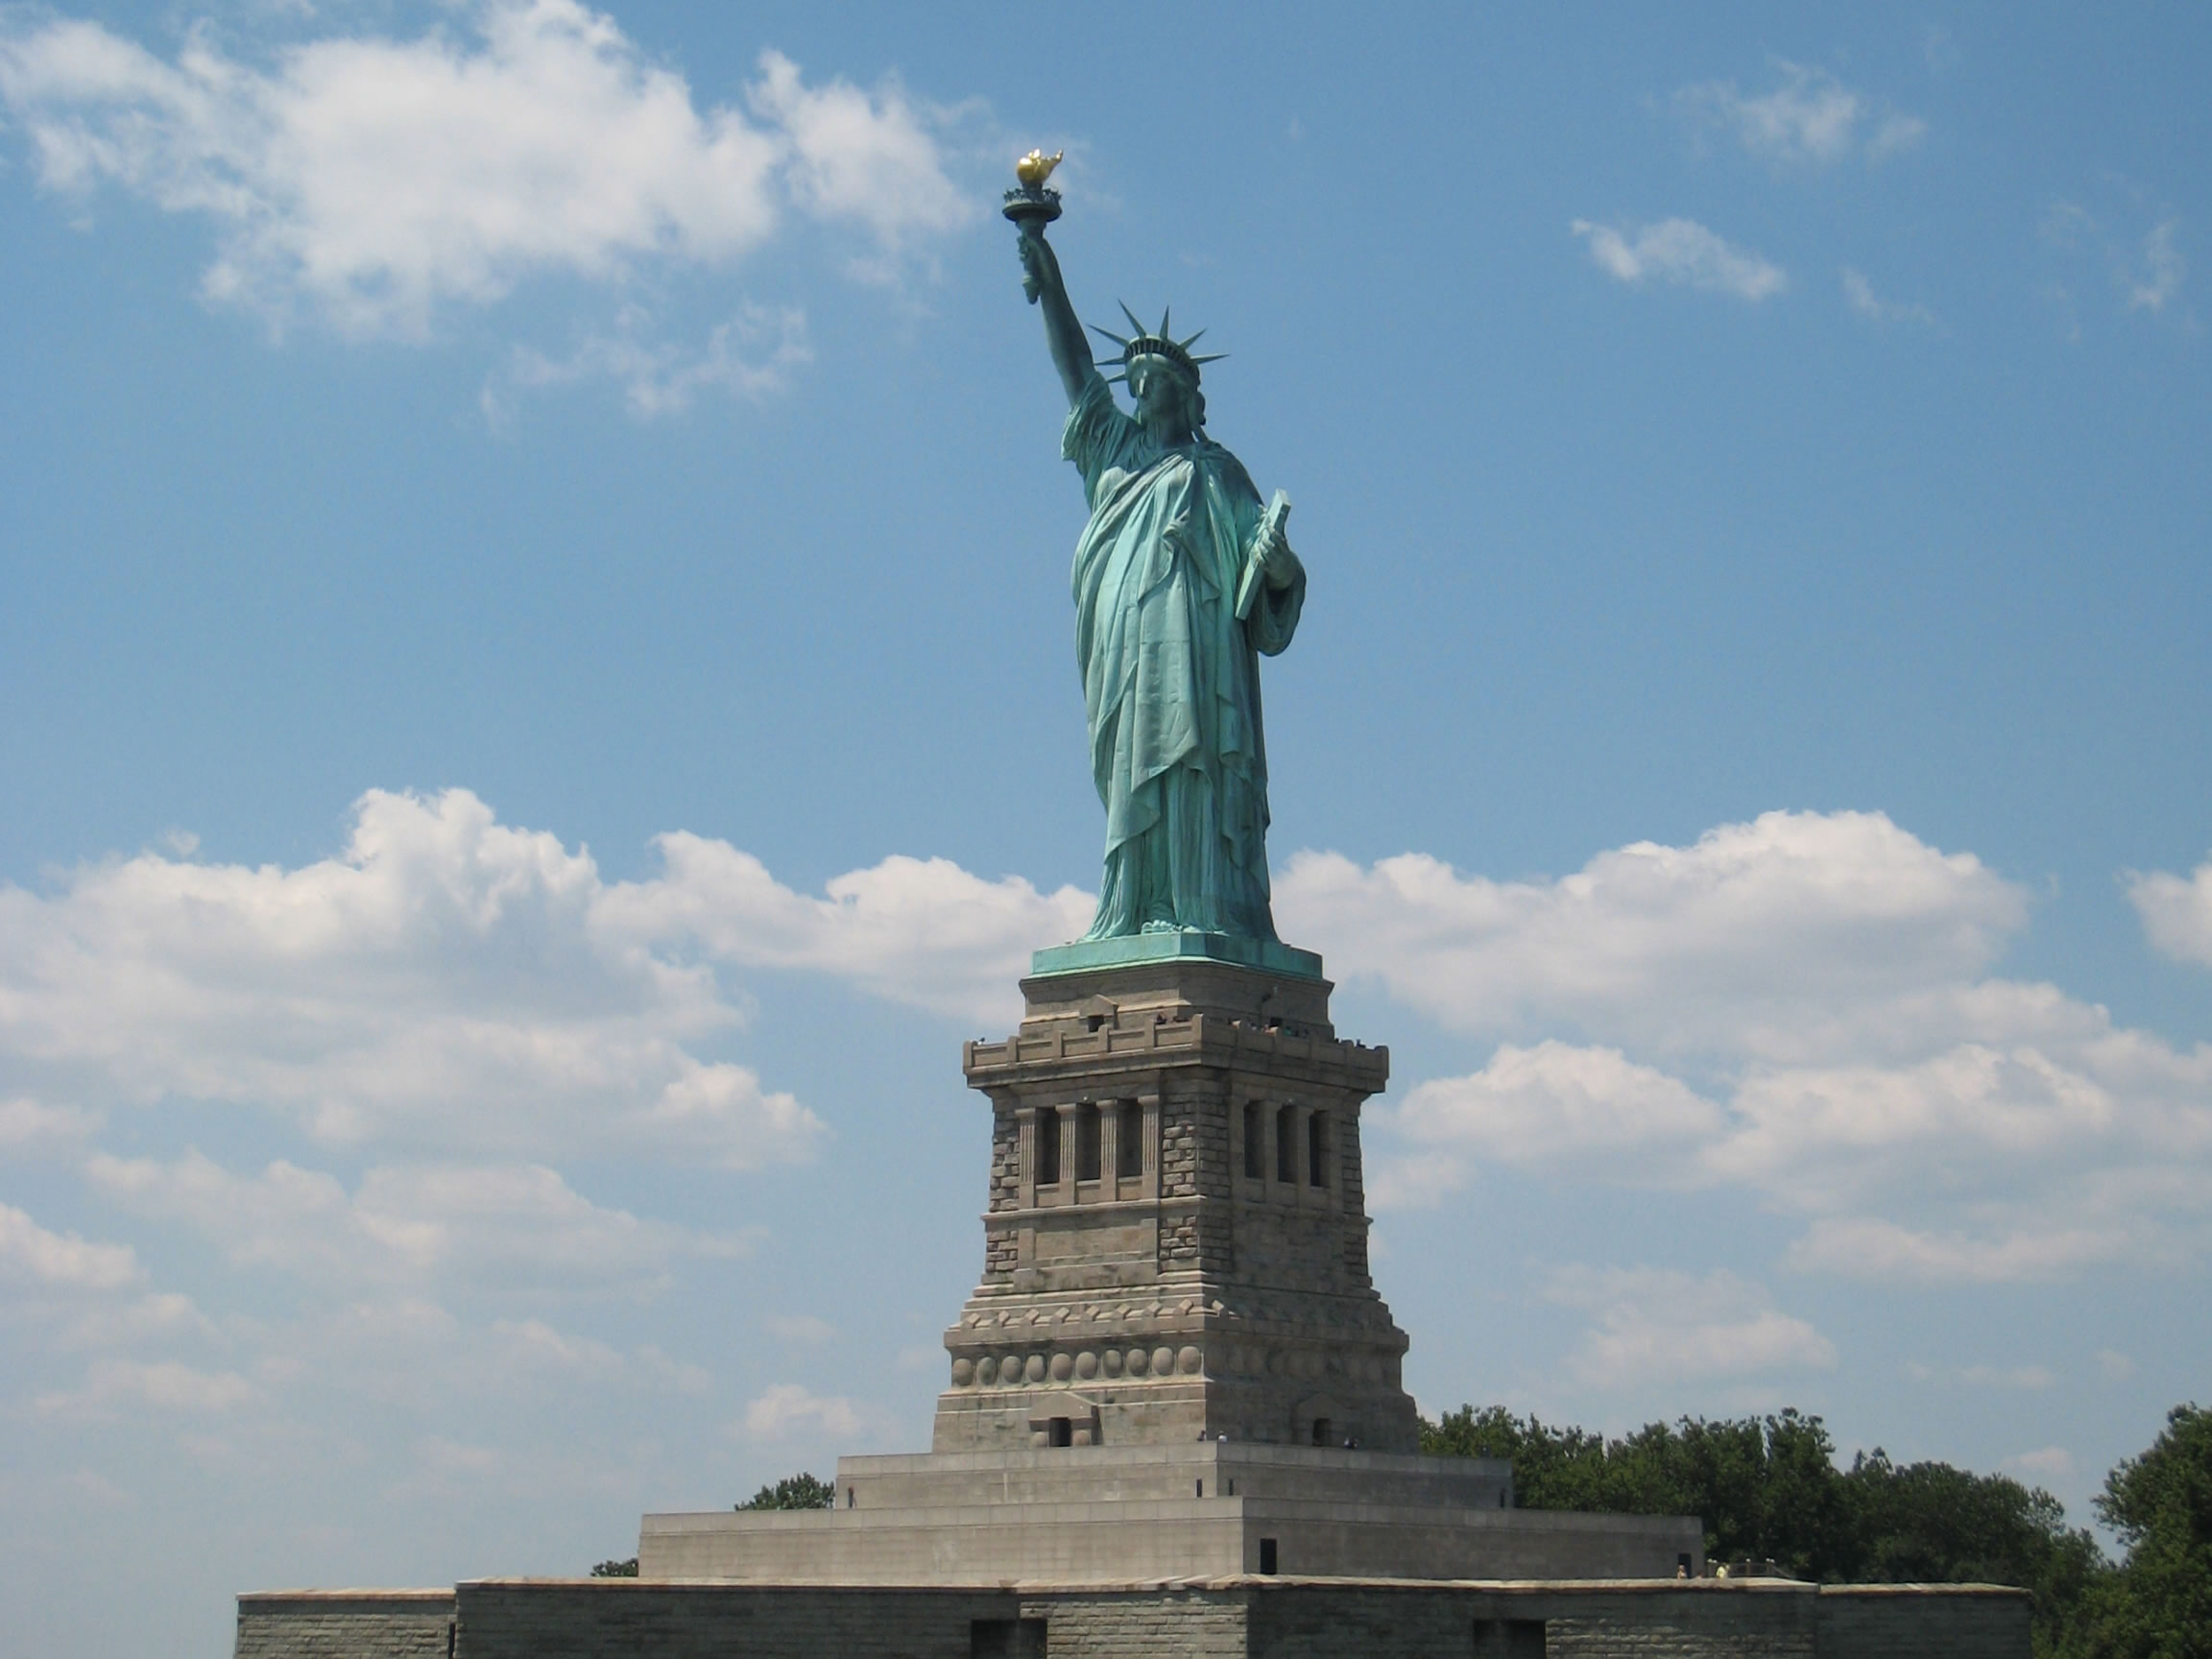 The magnificent Statue of Liberty on Liberty Island New York City